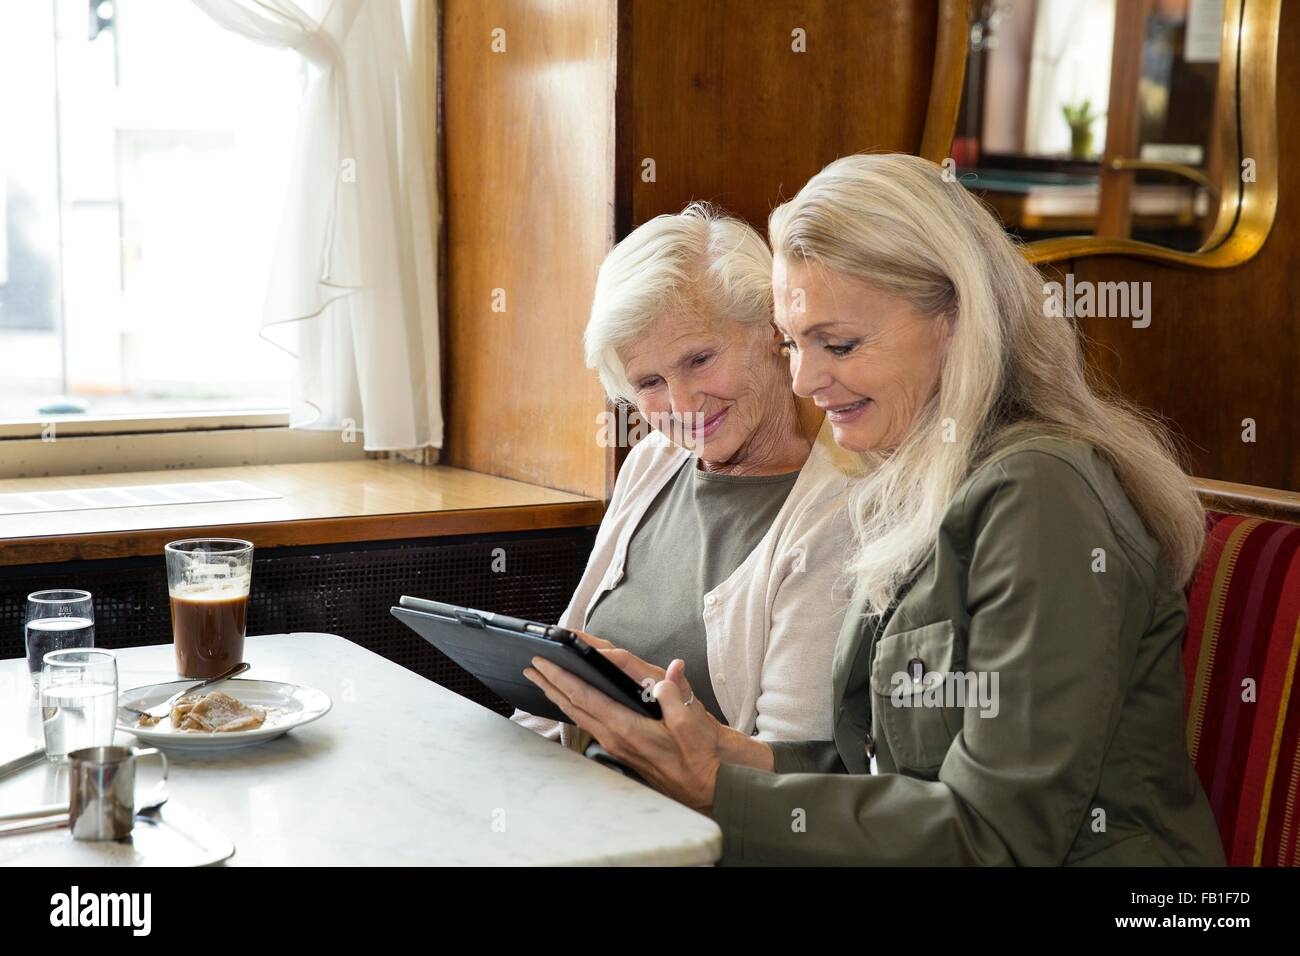 Mother and daughter sitting together in cafe, looking at digital tablet - Stock Image